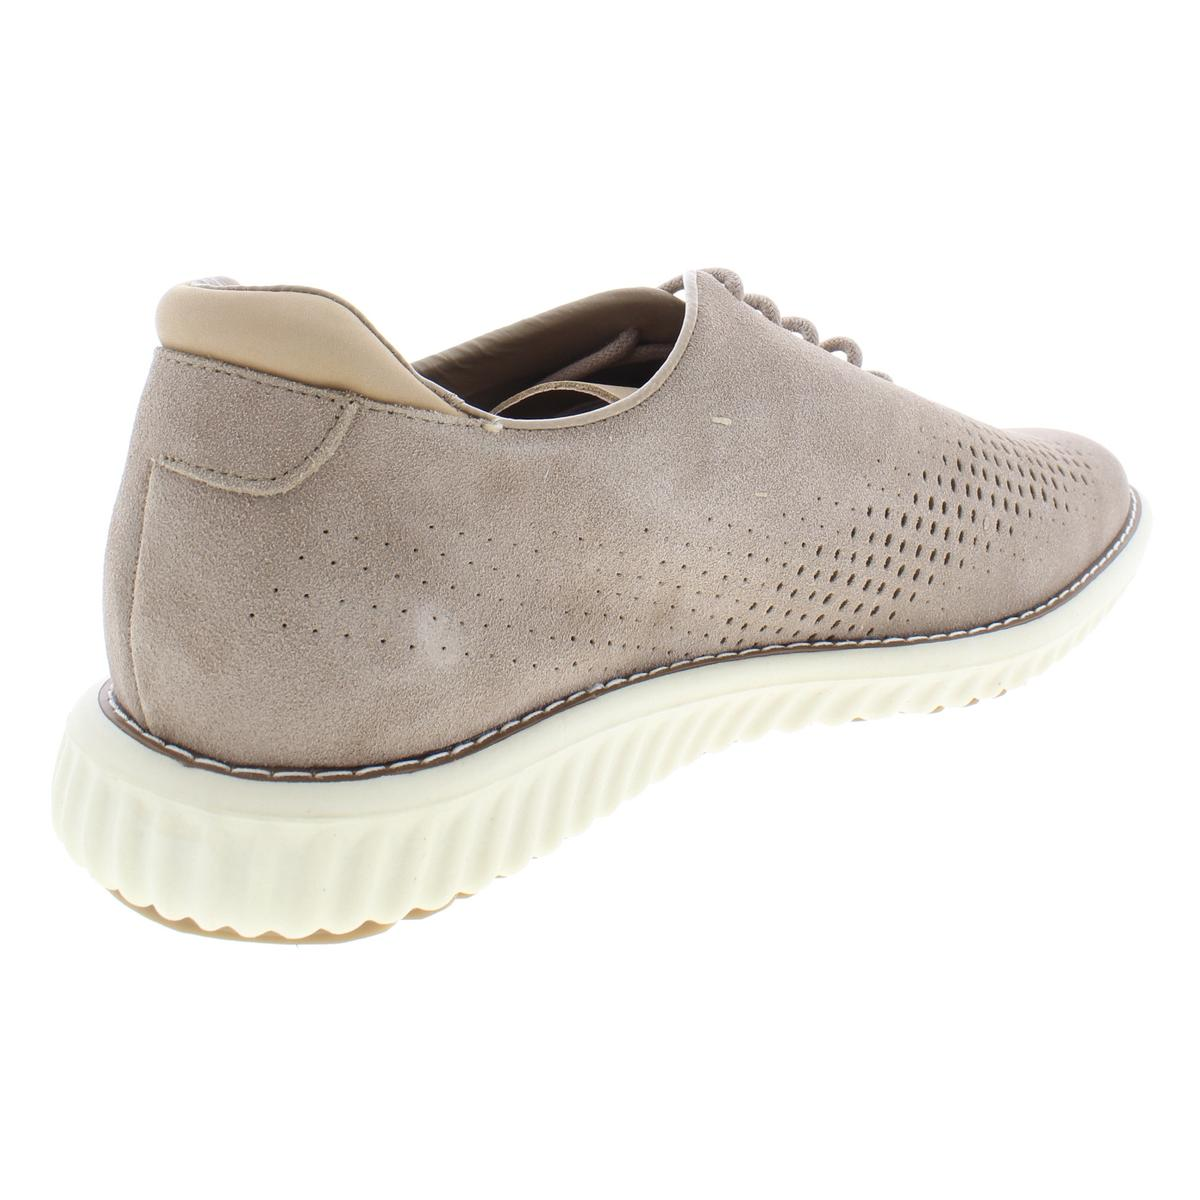 Steve-Madden-Mens-Vaelen-Suede-Perforated-Lace-Up-Oxfords-Sneakers-BHFO-9910 thumbnail 12